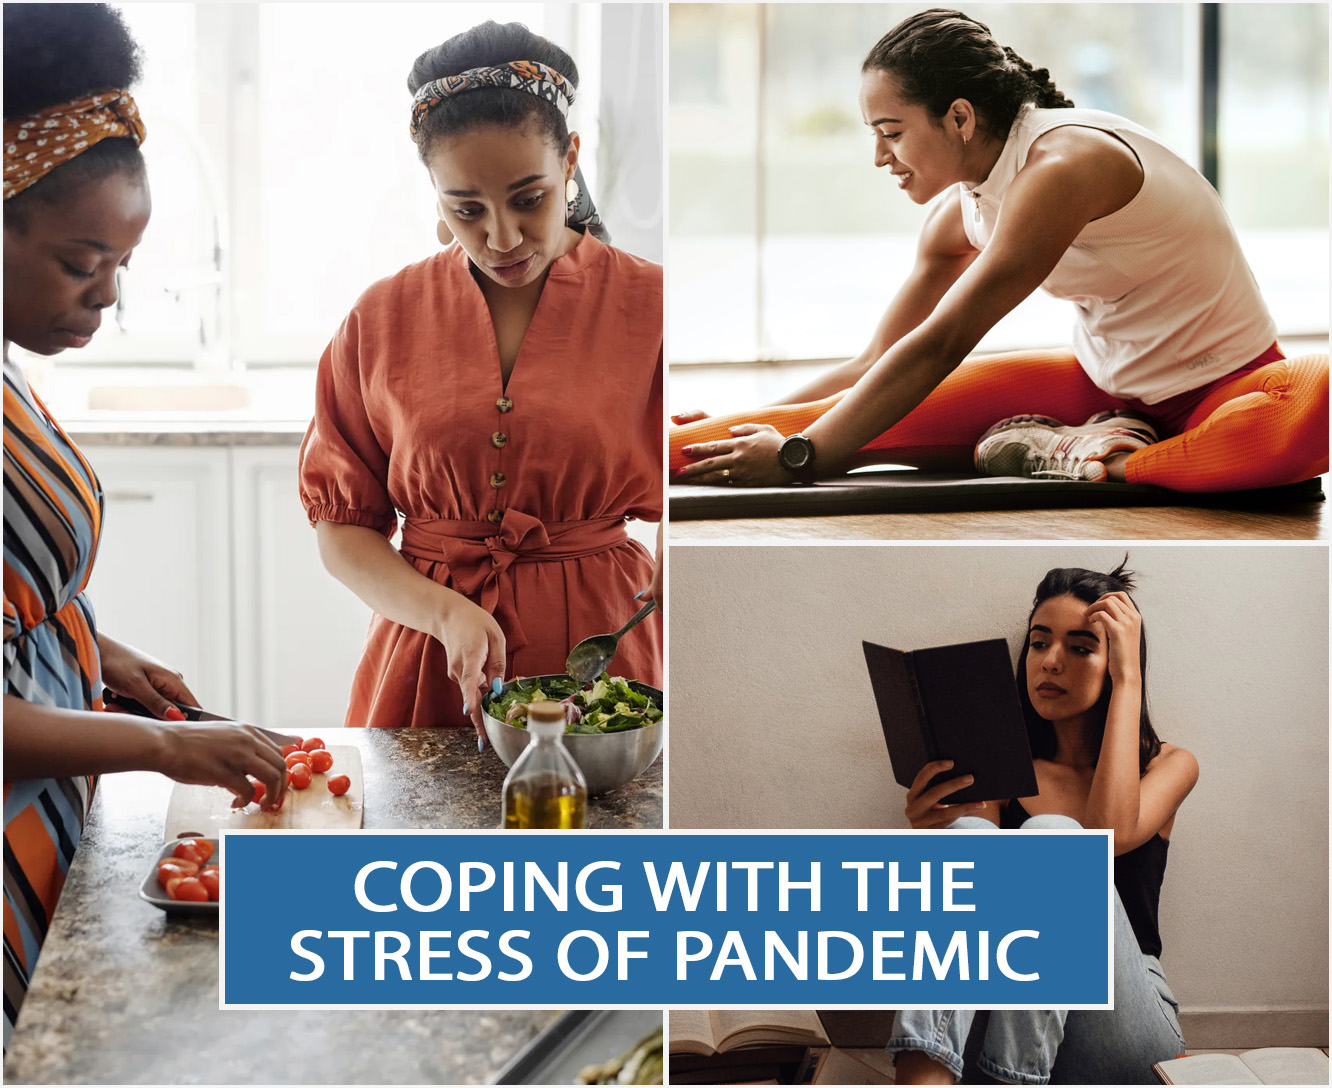 Coping With The Stress Of Pandemic